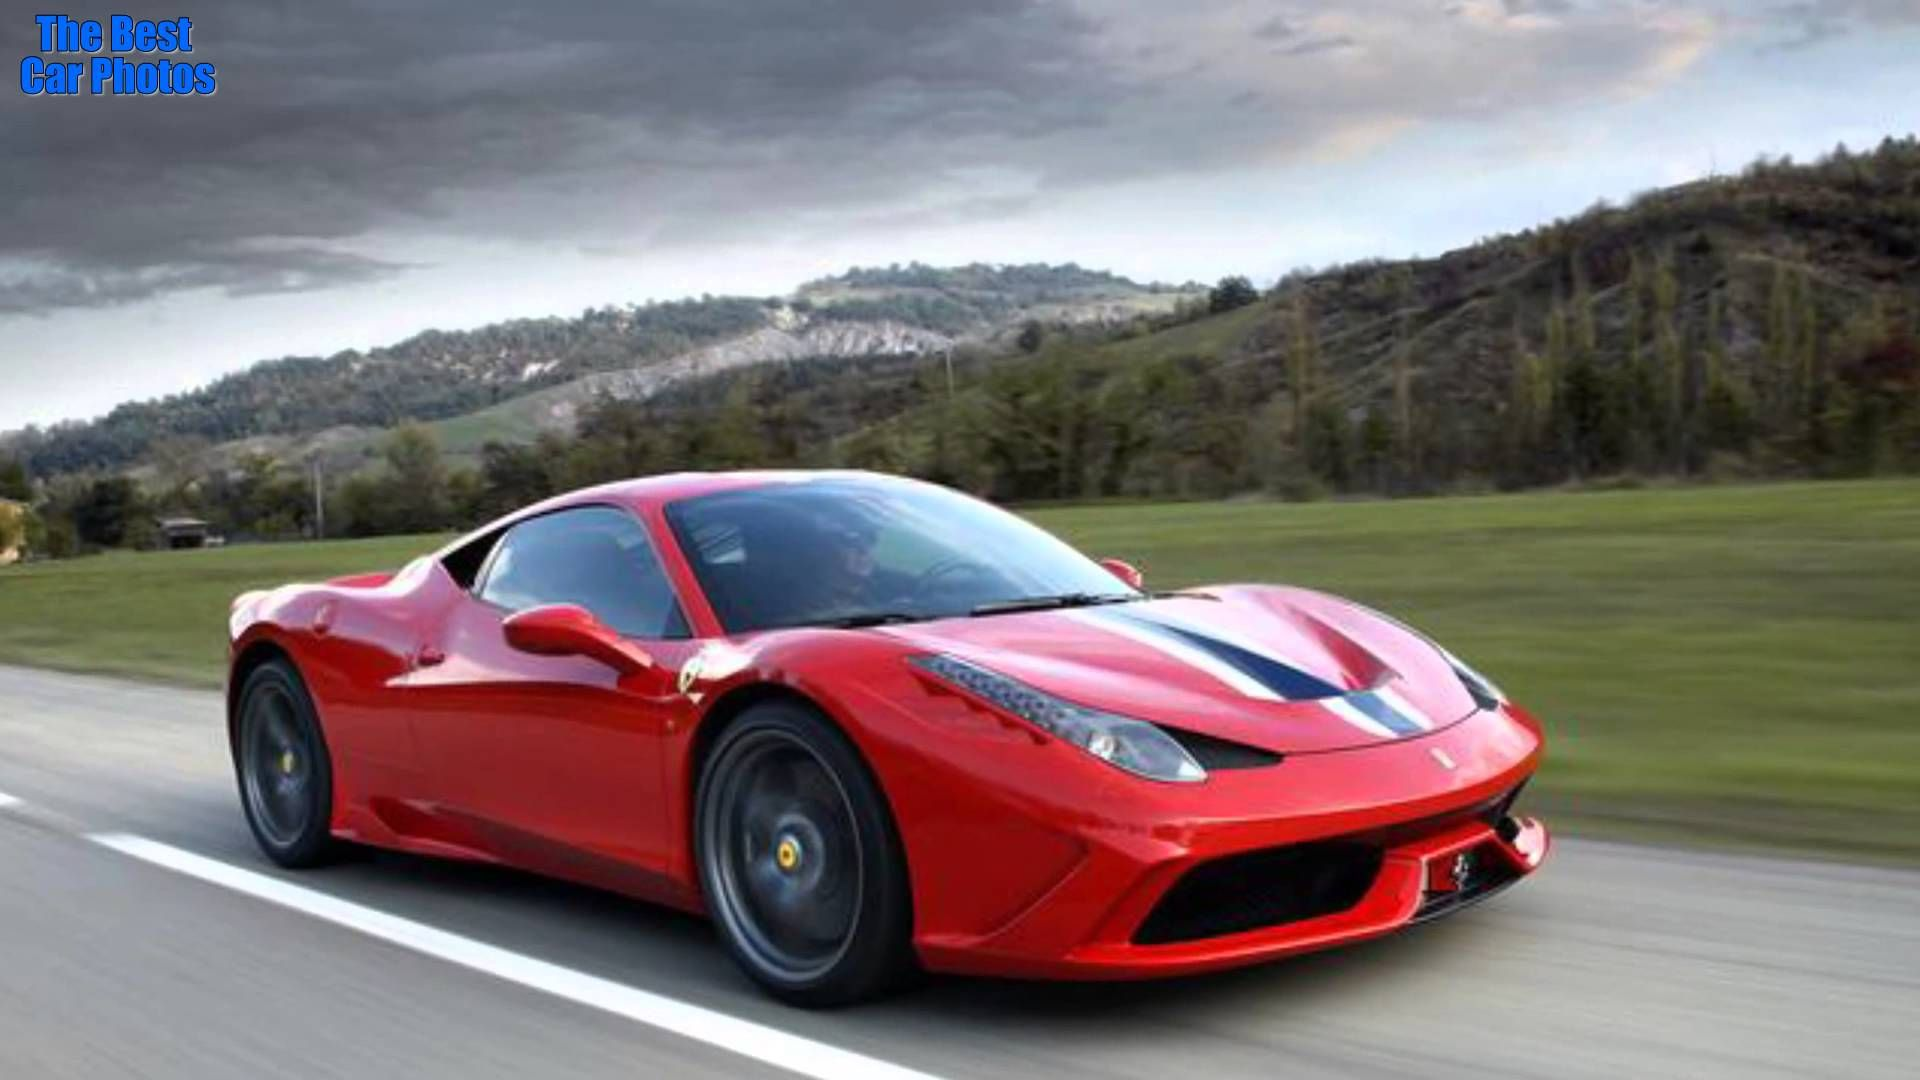 Ferrari Limited Edition Model 458 Speciale